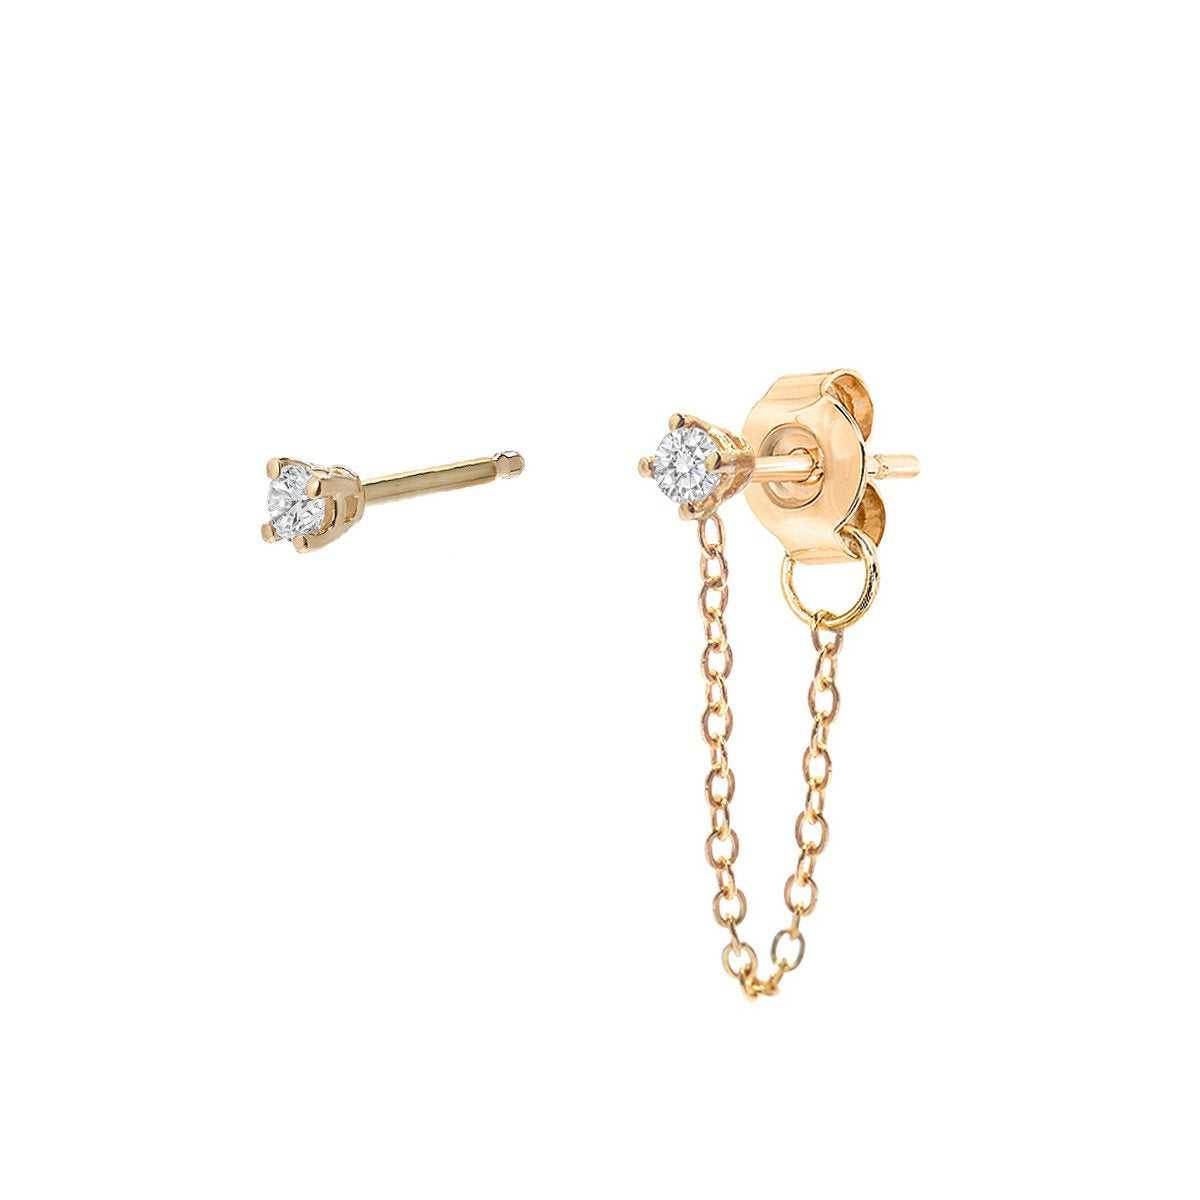 MINI DIAMOND & MINI DIAMOND CHAINED EARRING SET